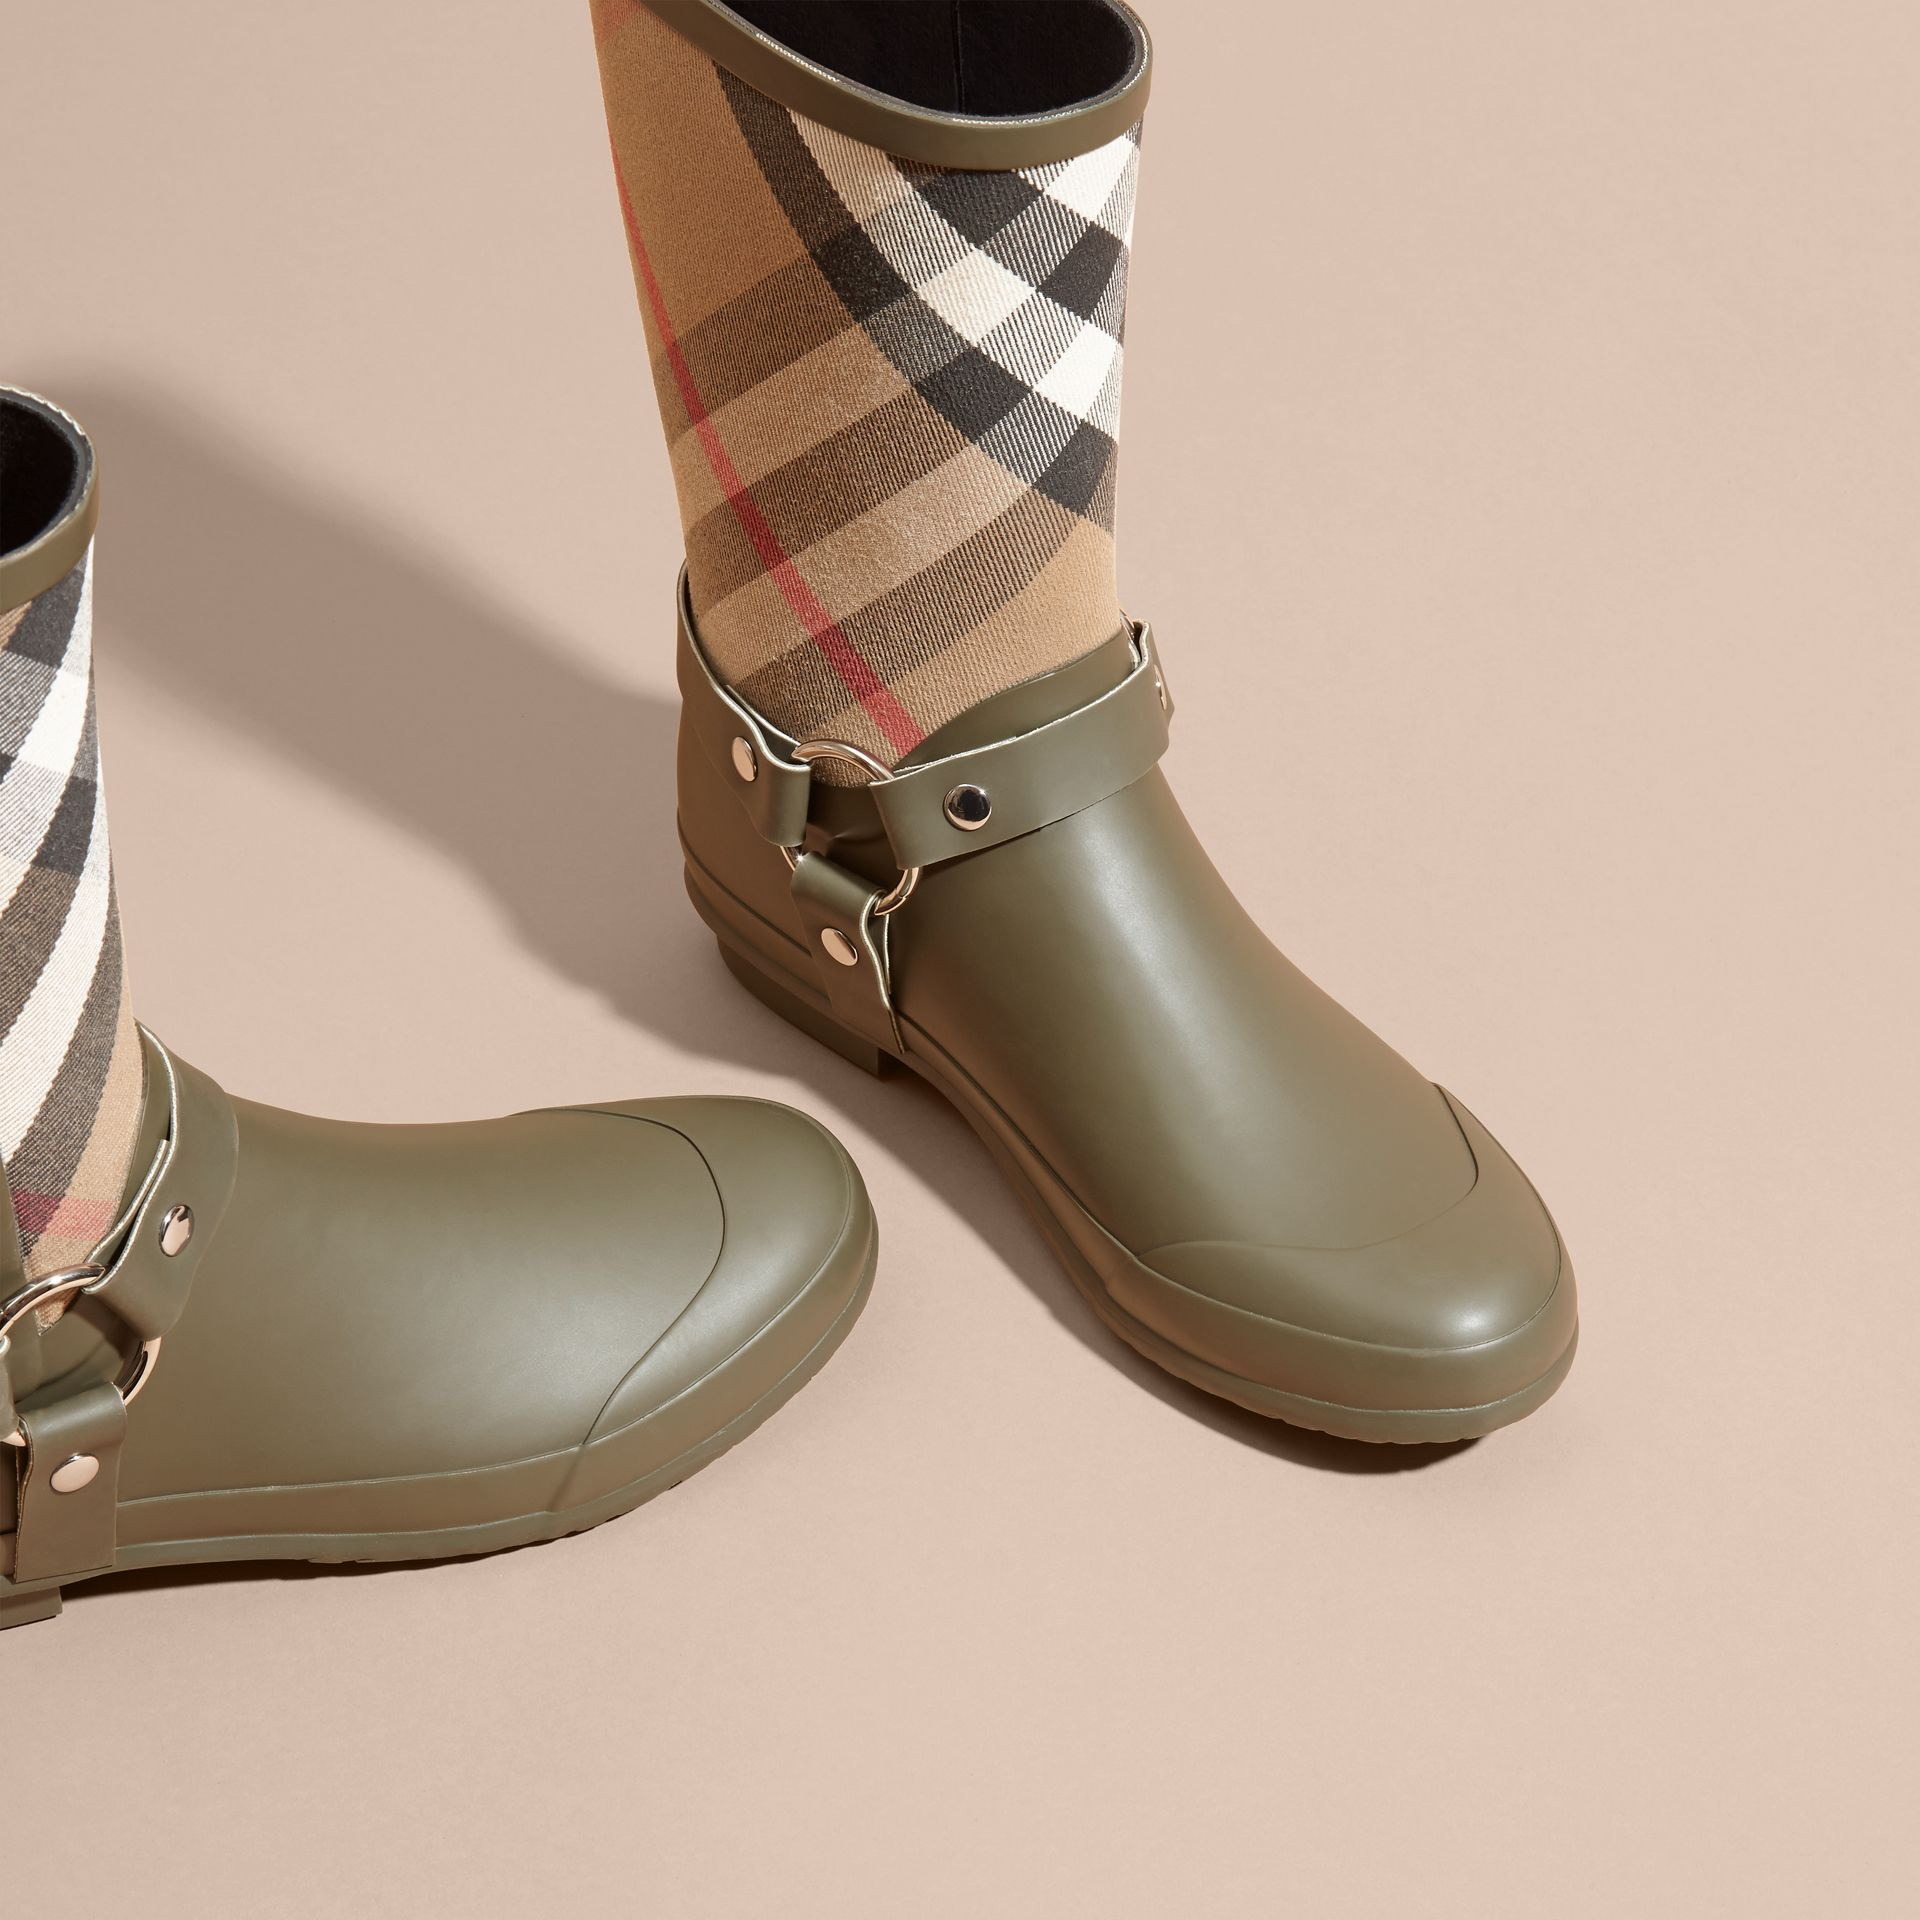 House check/military green Buckle and Strap Detail Check Rain Boots House Check/military Green - gallery image 3